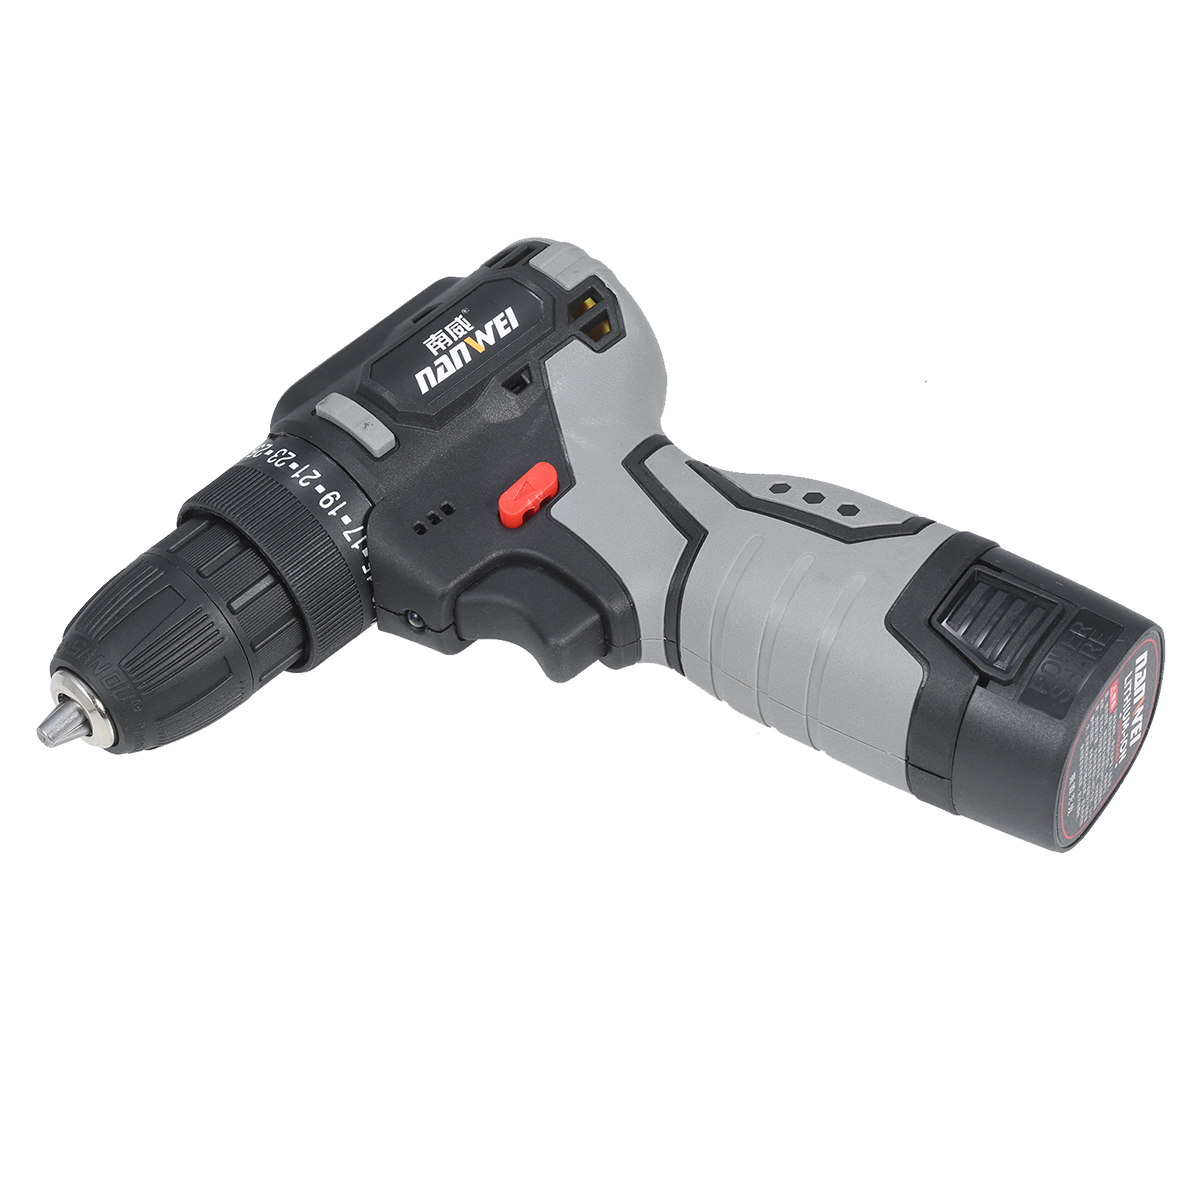 Details about  /16.8V Cordless Drill Driver Electric Screwdriver Tool Li-ion Battery Fast Charge